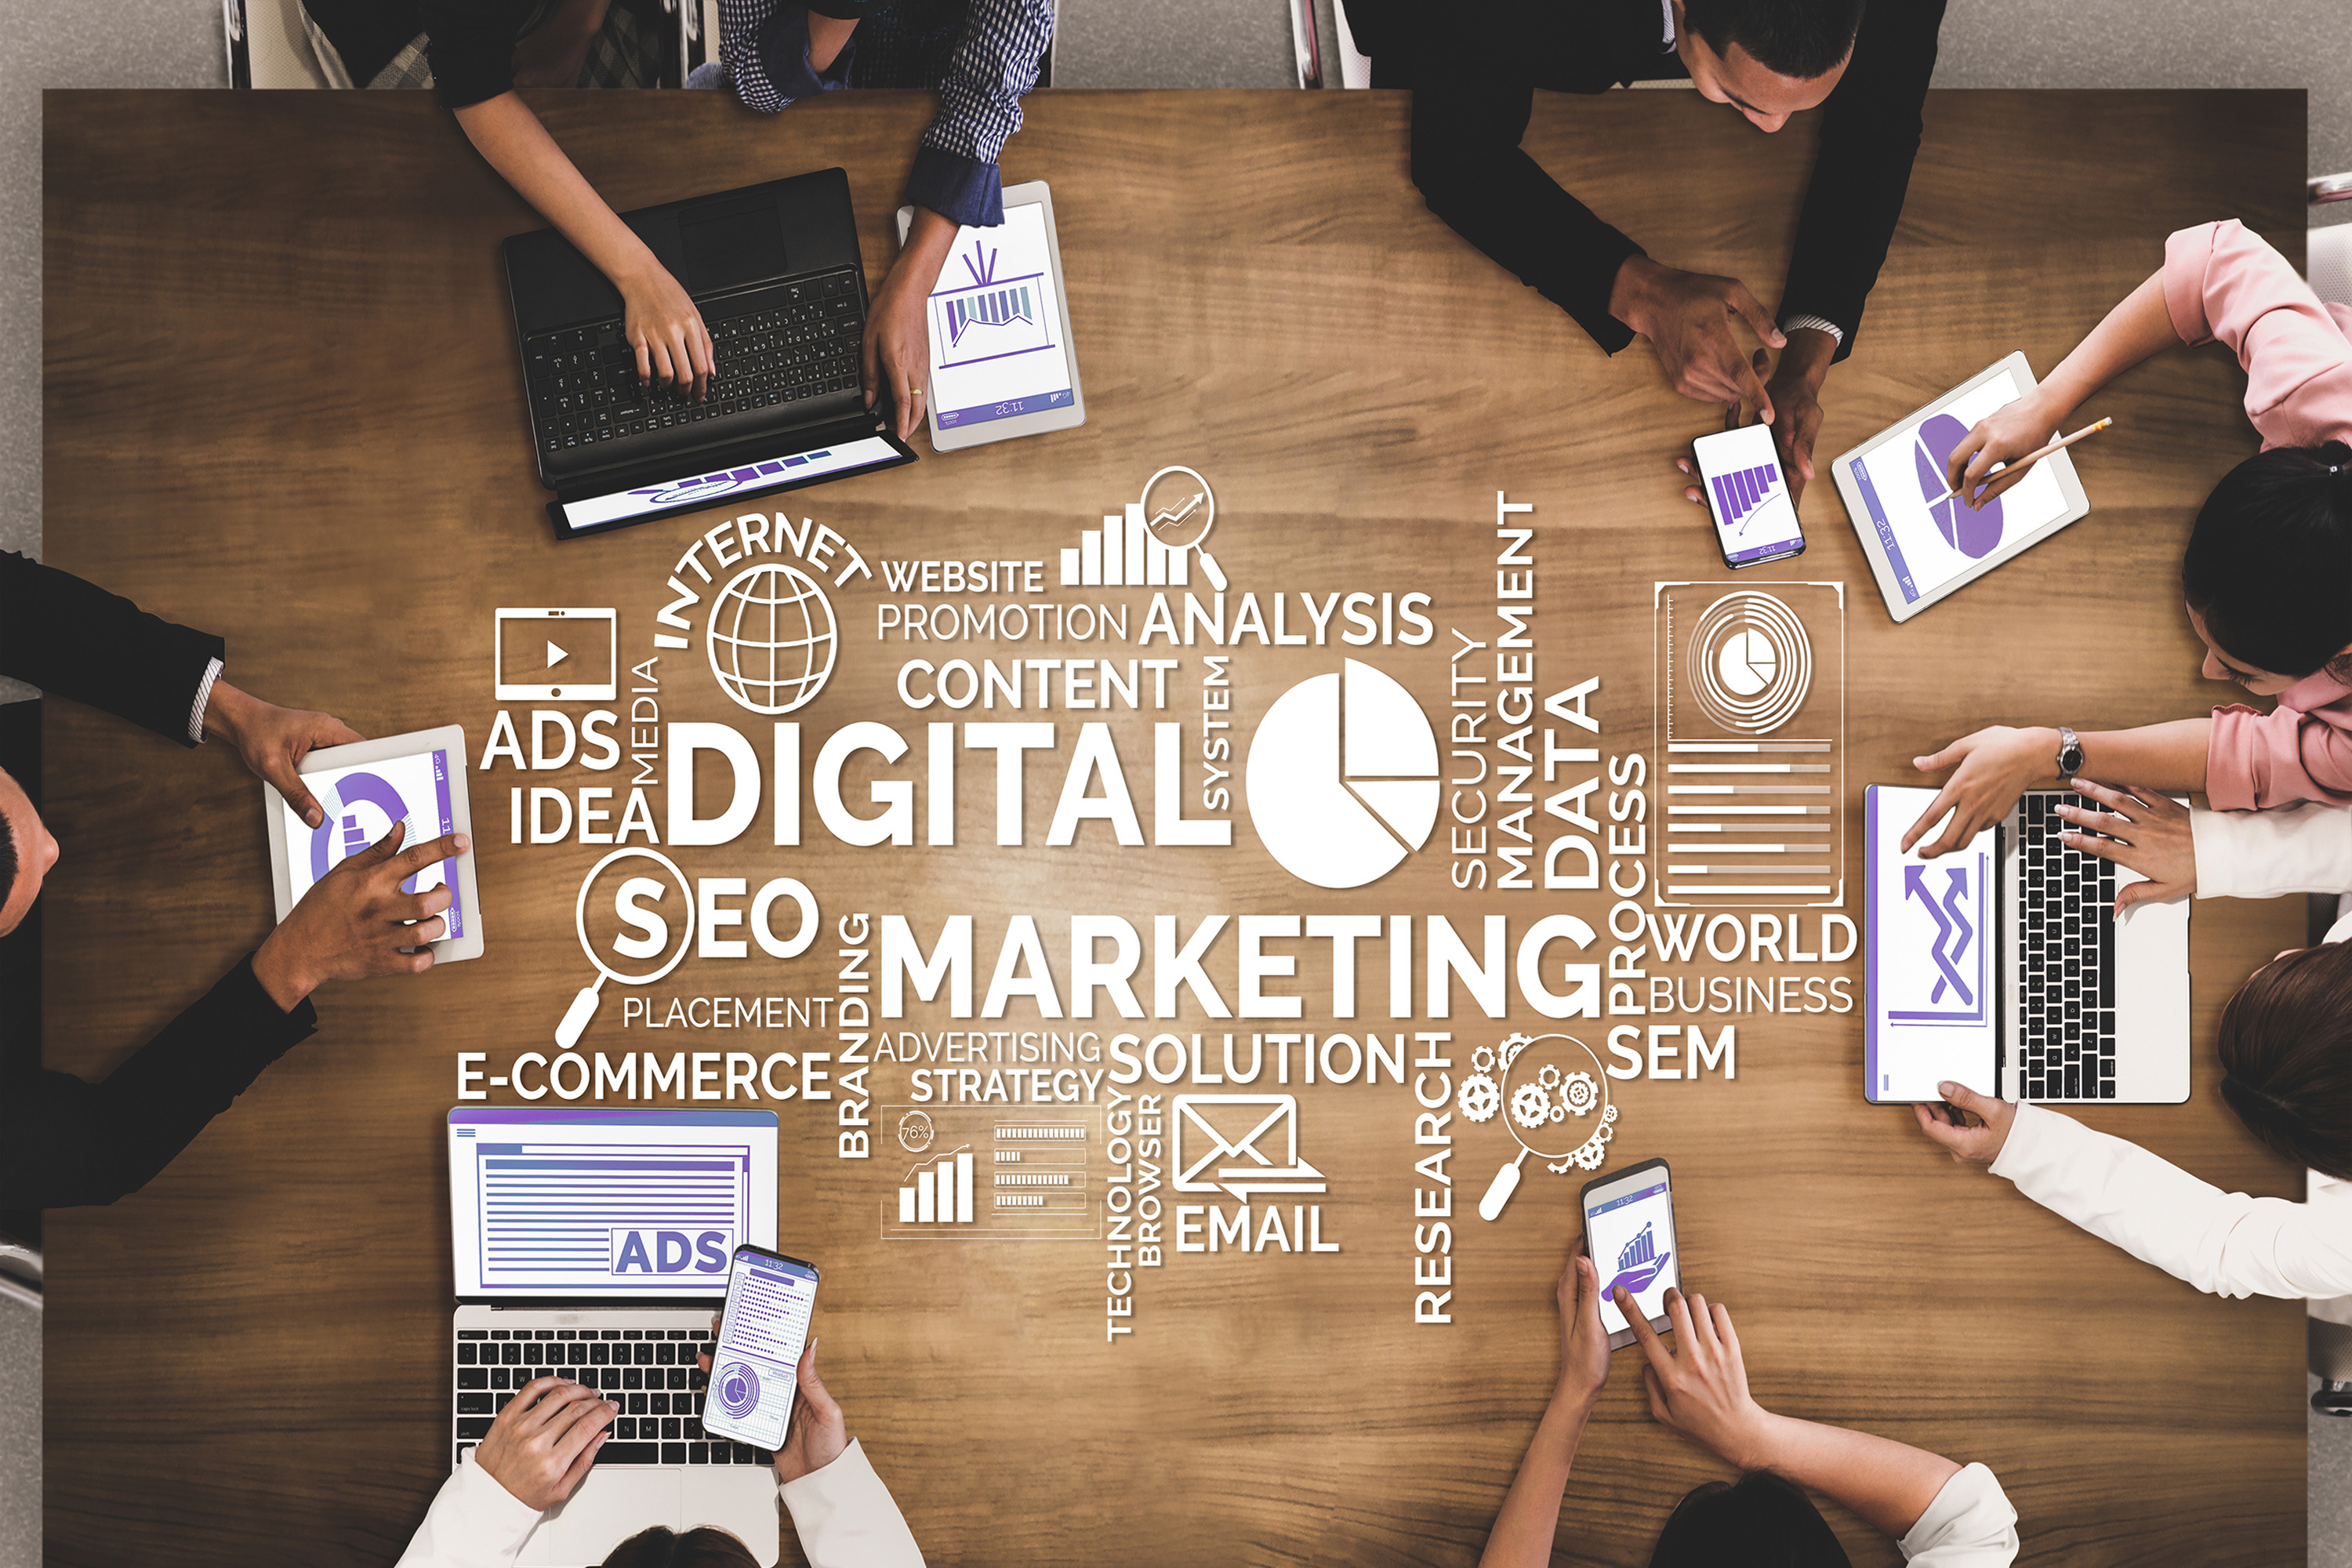 Does Your Marketing Agency Really Understand Your Business Here's How to Tell - 3000x2000 - 03202020 - Workdom-